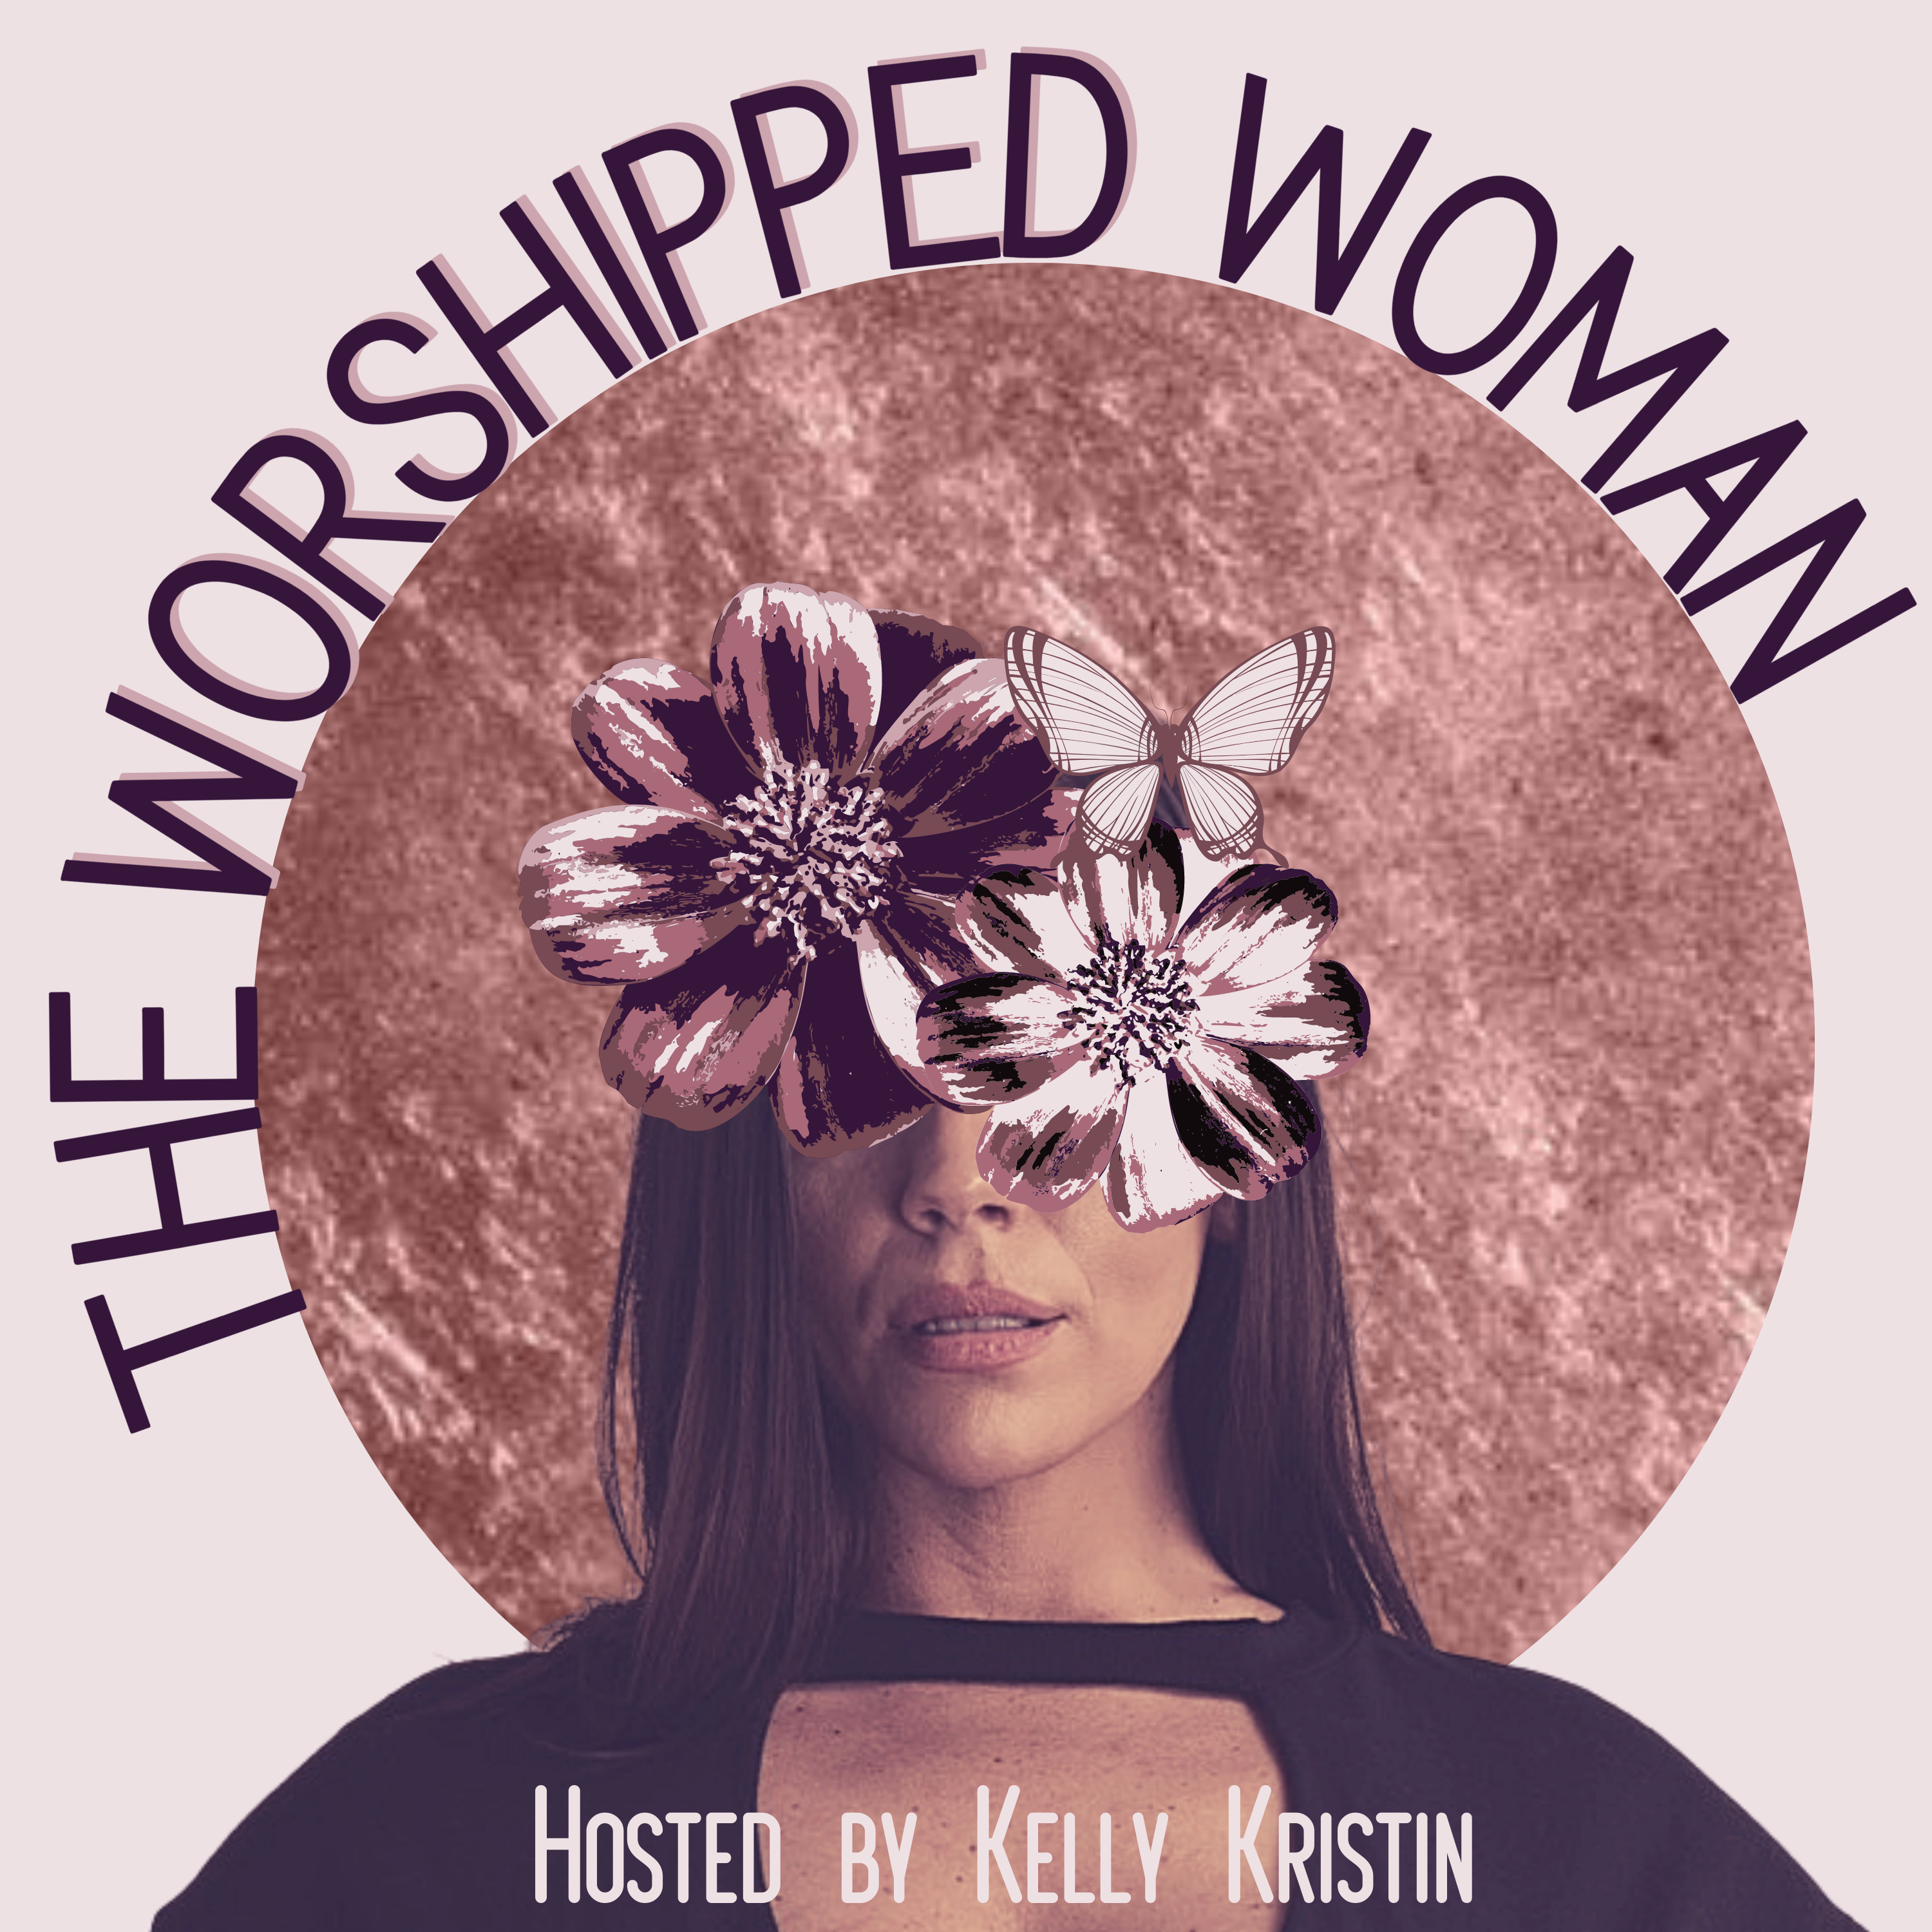 The Worshipped Woman show art